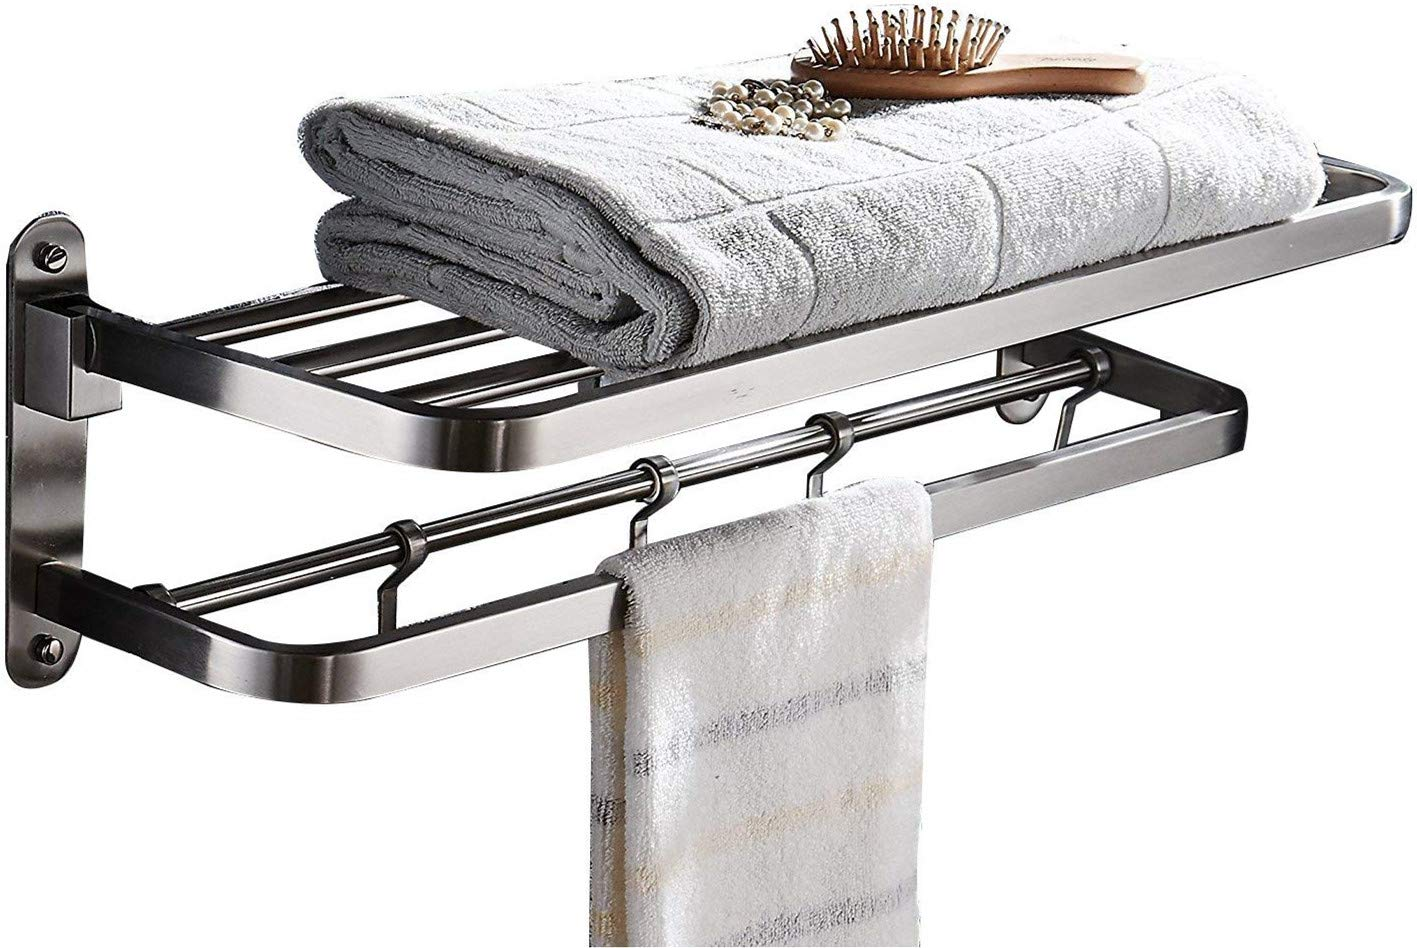 Ello&Allo Stainless Steel Towel Racks for Bathroom Shelf Double Towel Bar Holder with Hooks Wall Mounted Multifunctional Foldable Brushed Nickel ssrack-1